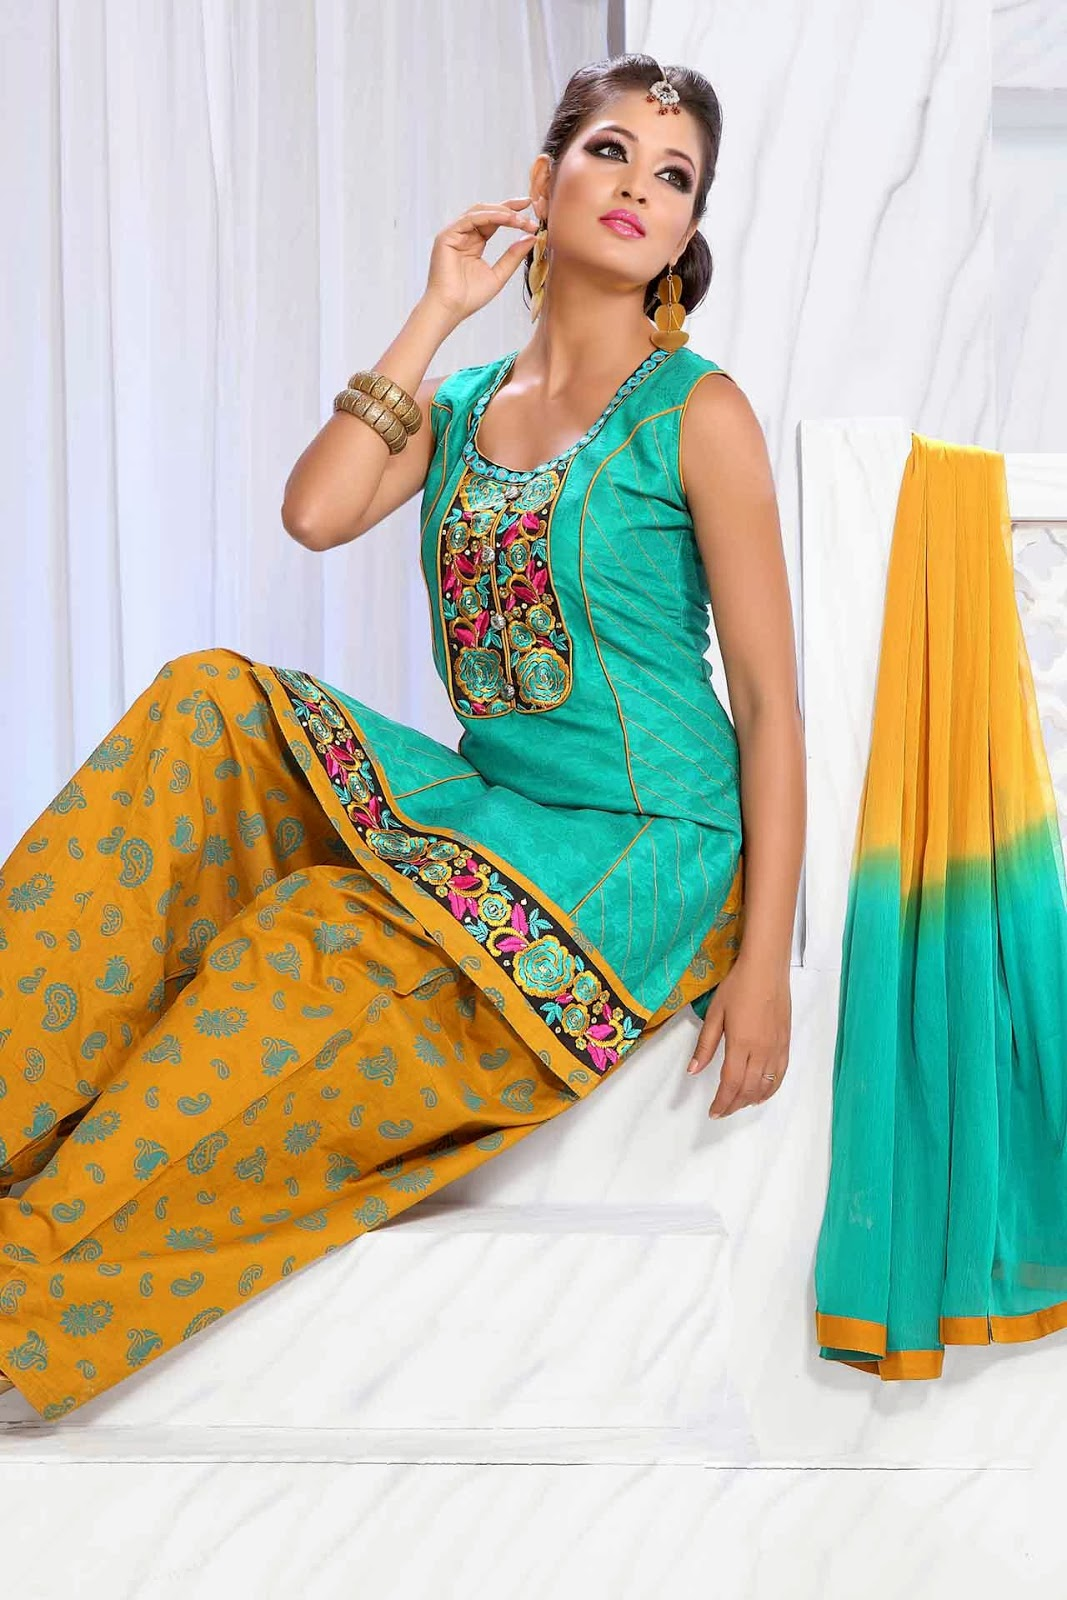 Punjabi Girl Salwar Kameez Hd Pictures Gallery 1 -8129